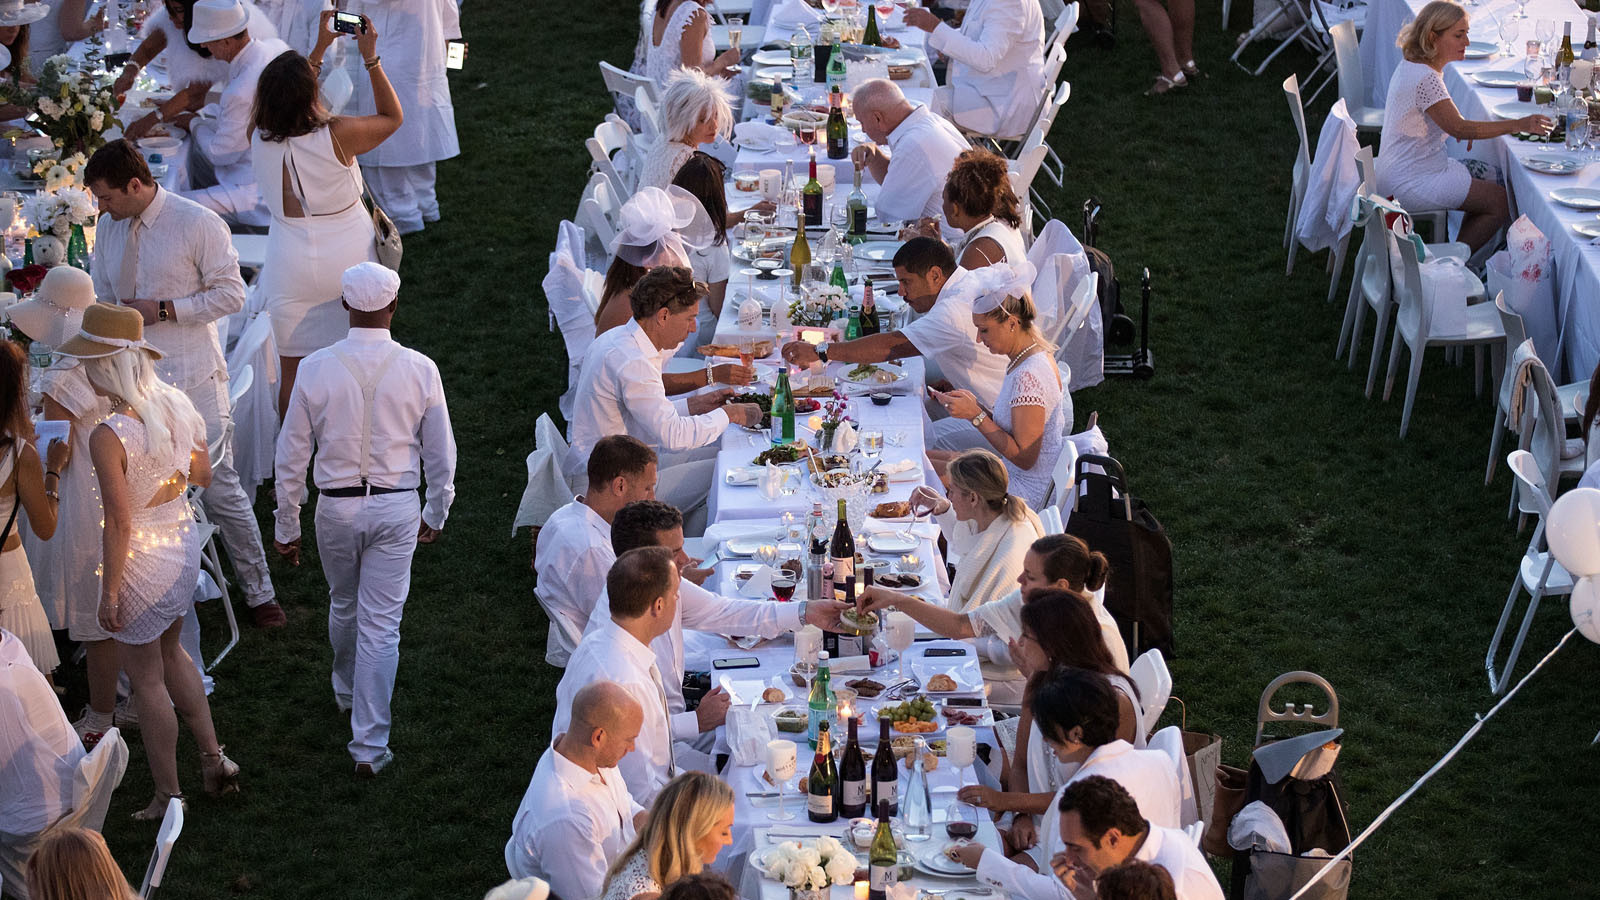 Le Diner En Blanc Will Make Its Baltimore Debut This